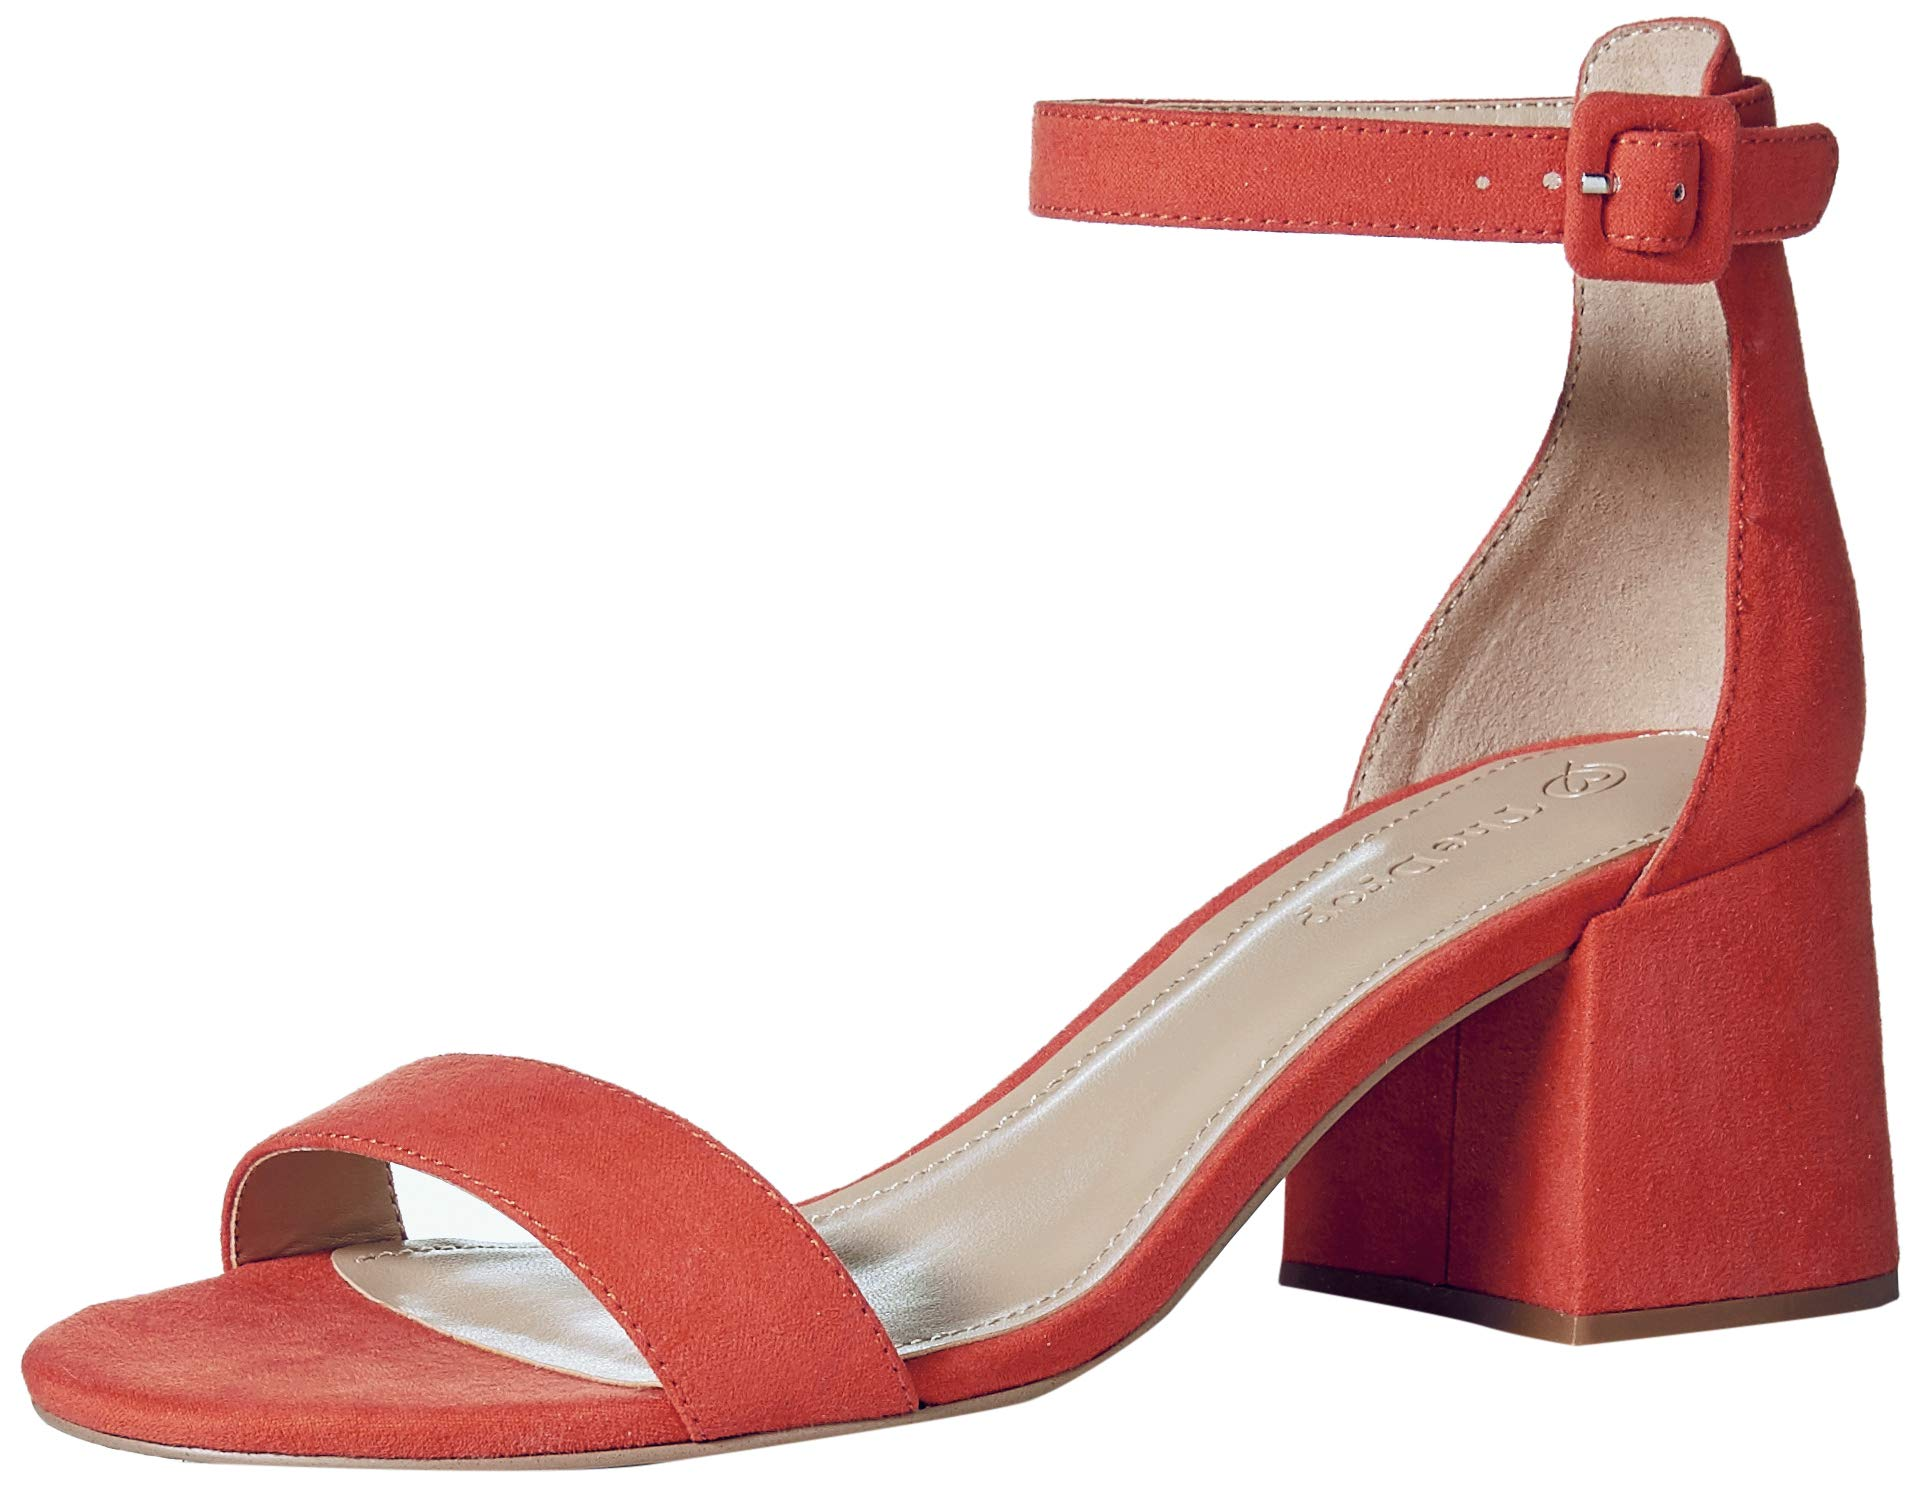 The Drop Women's Lyon Block Heeled Strappy Sandal